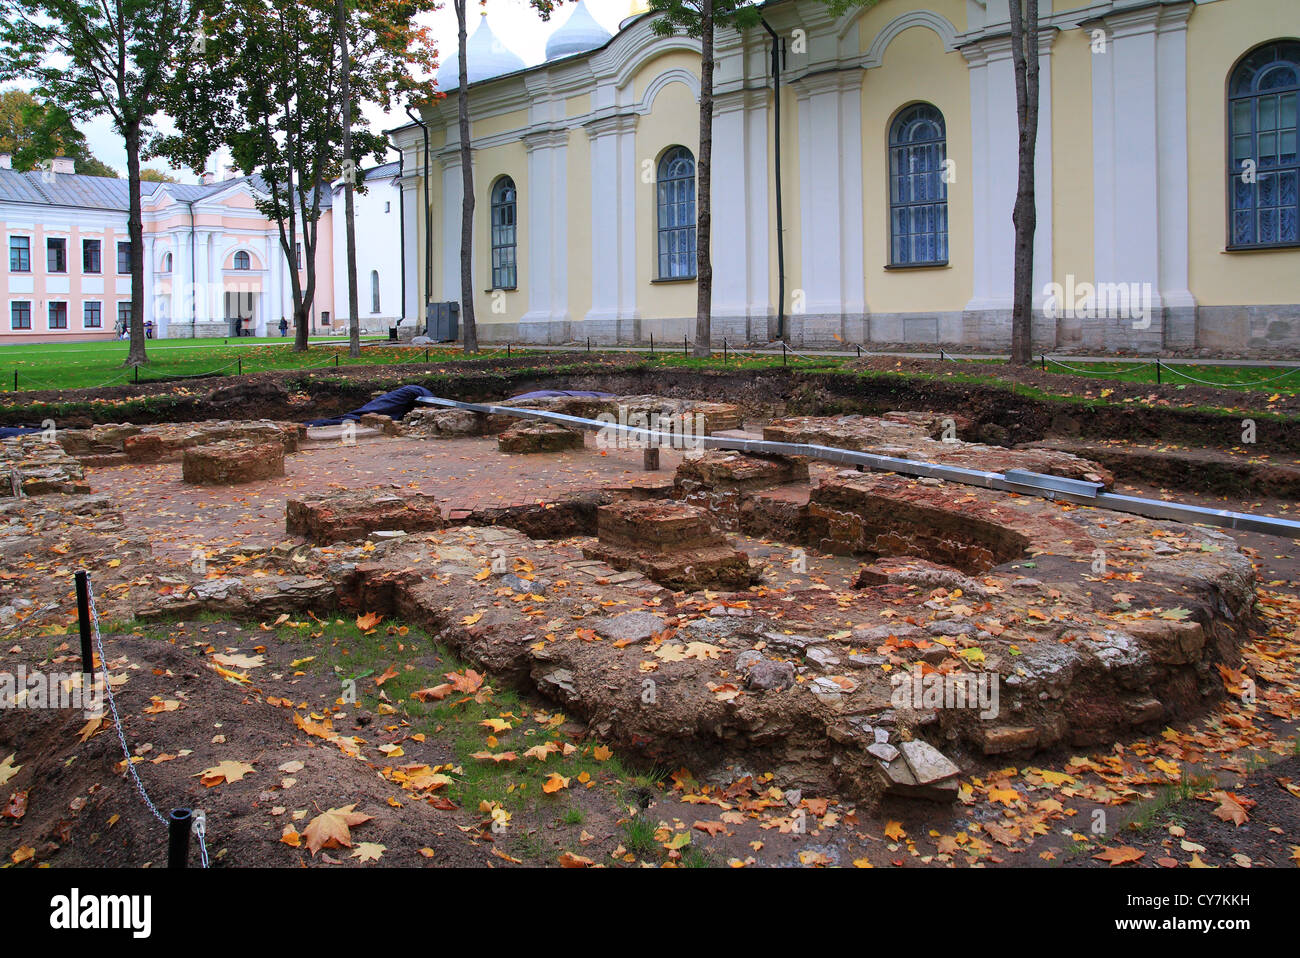 history excavations near old-time building - Stock Image